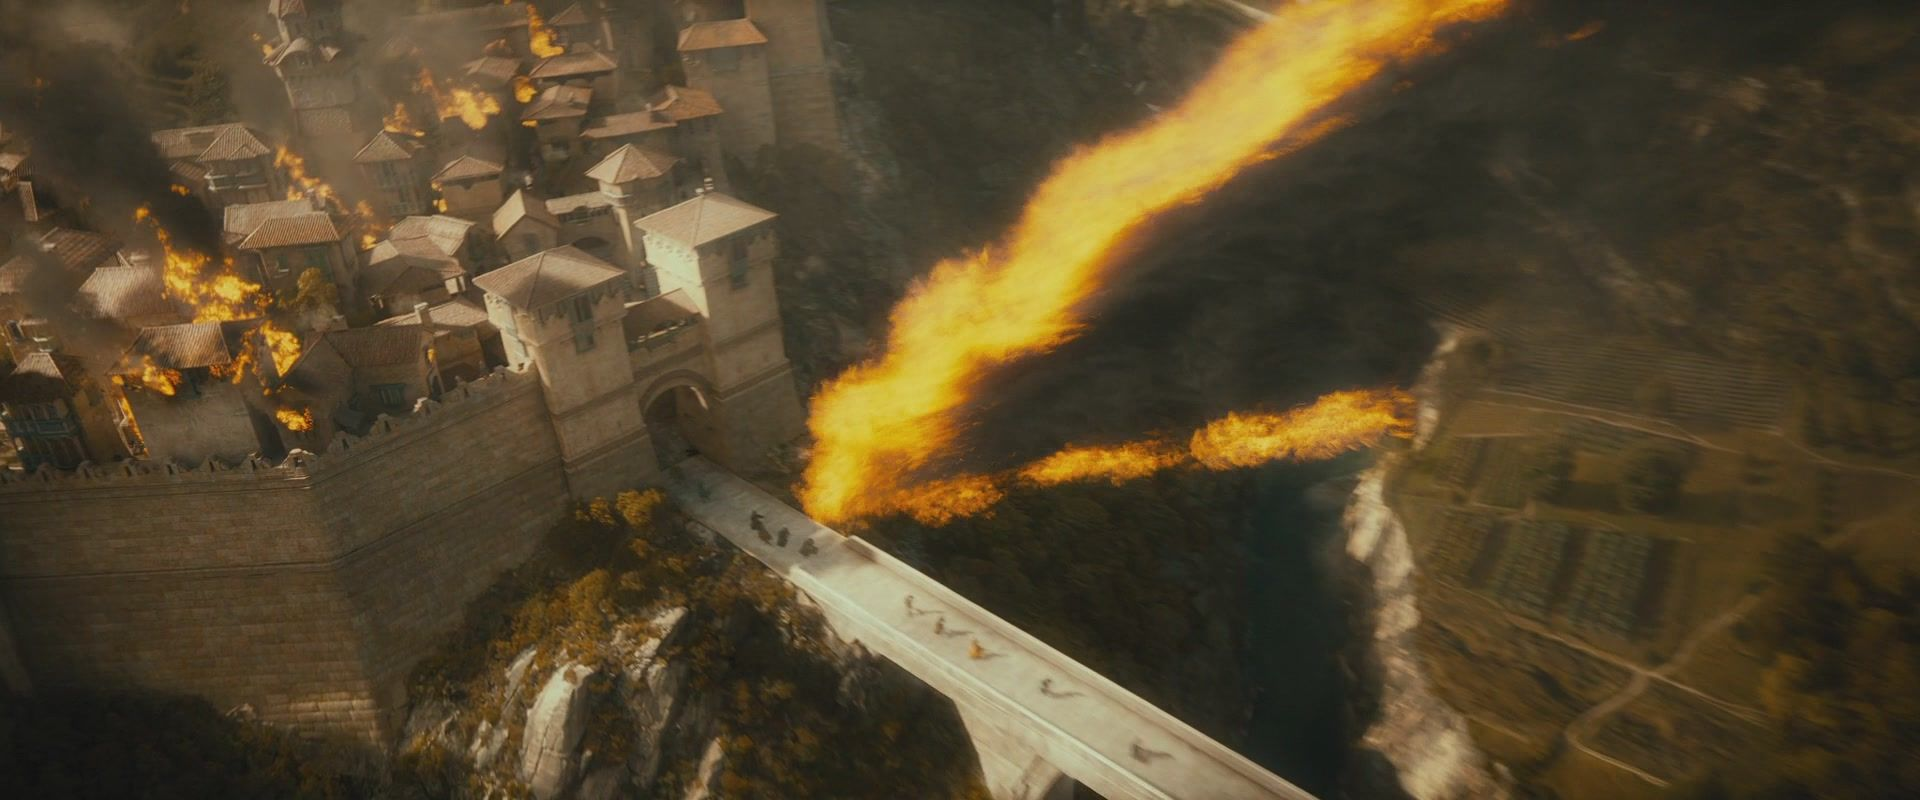 The Hobbit The Desolation of Smaug  The One Wiki to Rule